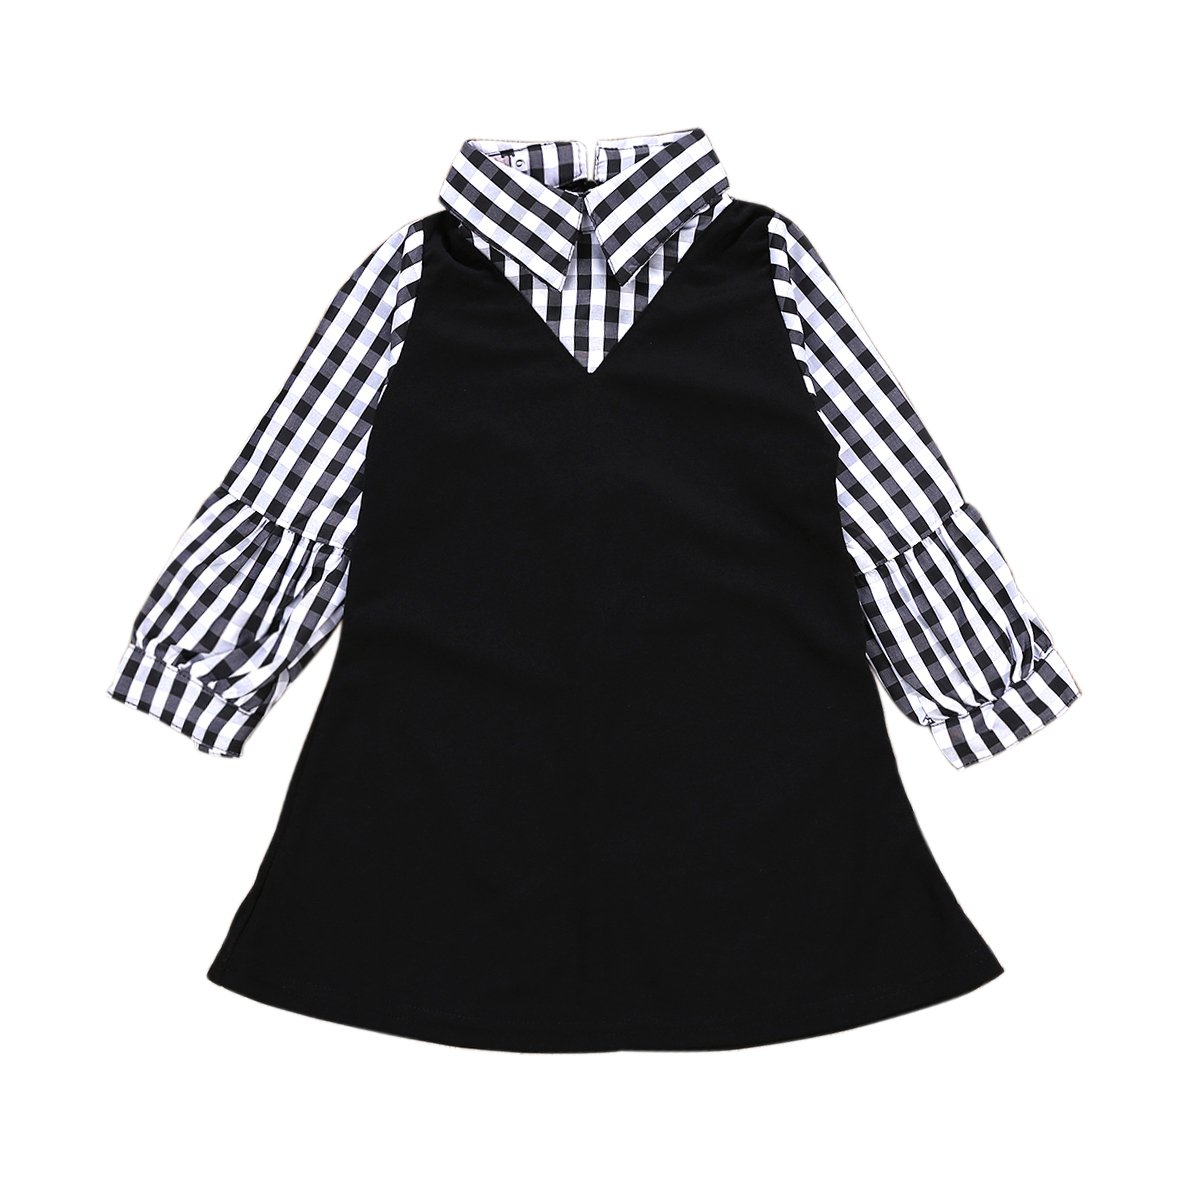 XiaoReddou Baby Kids Girls Plaid Long Sleeve Lapel Collar Dress Autumn Playwear Party Dress …